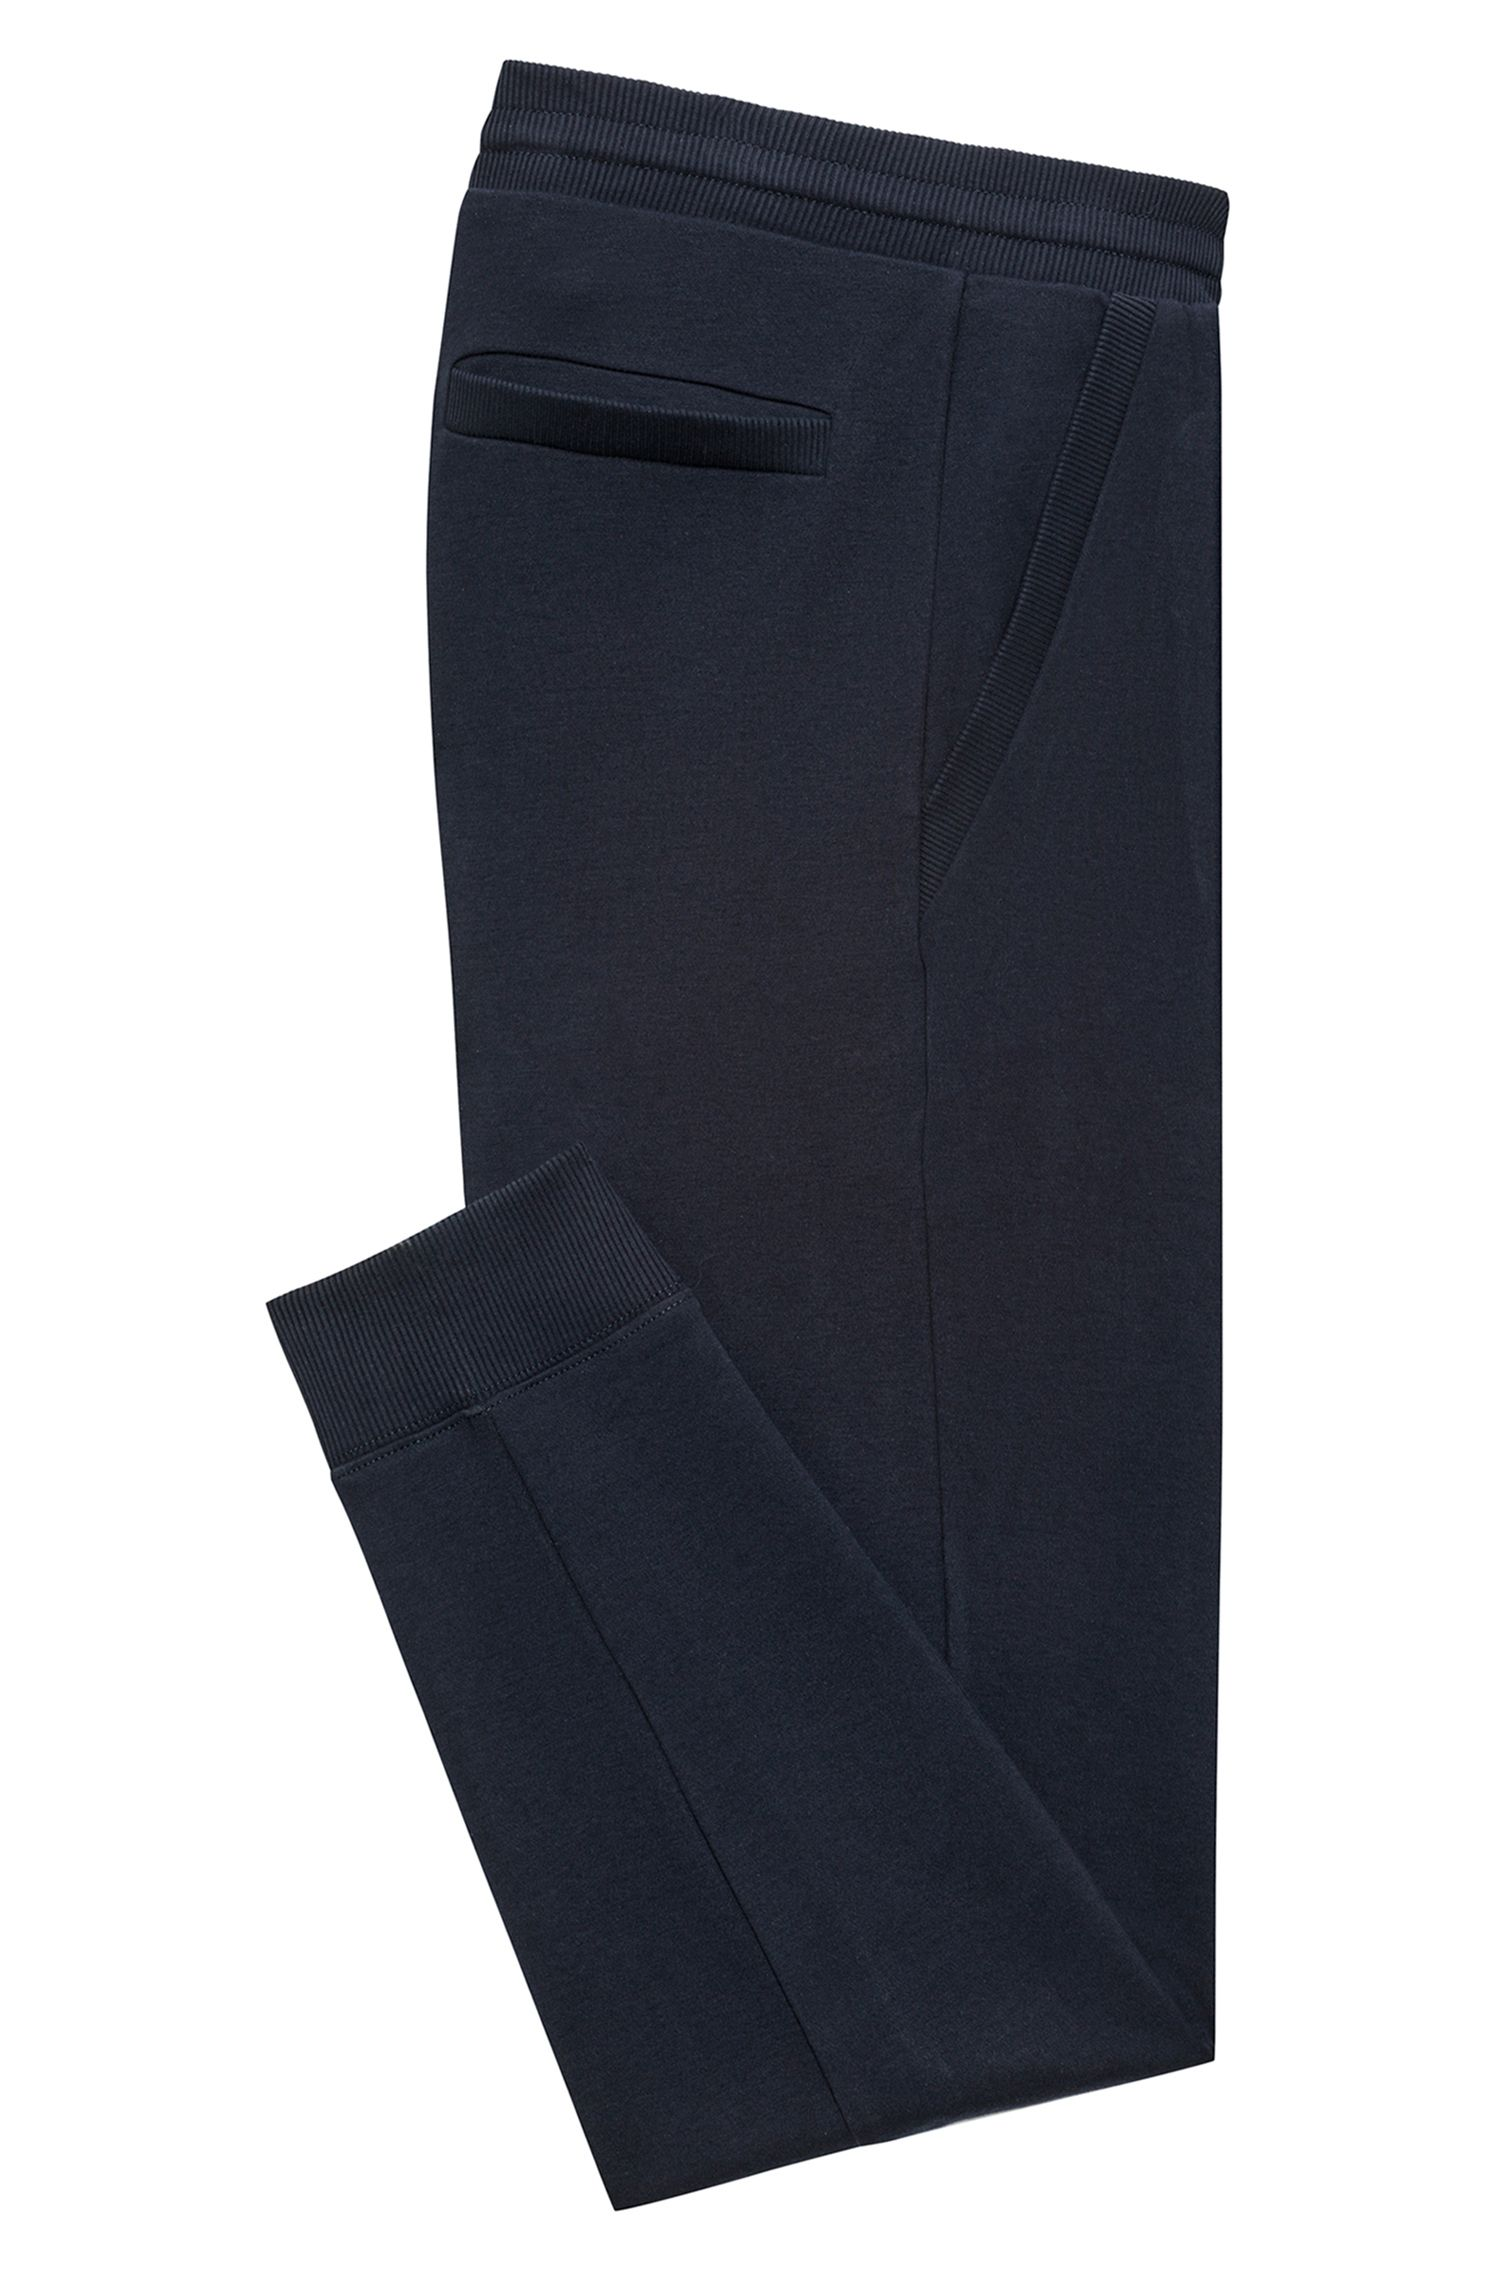 Pantalones regular fit en algodón interlock